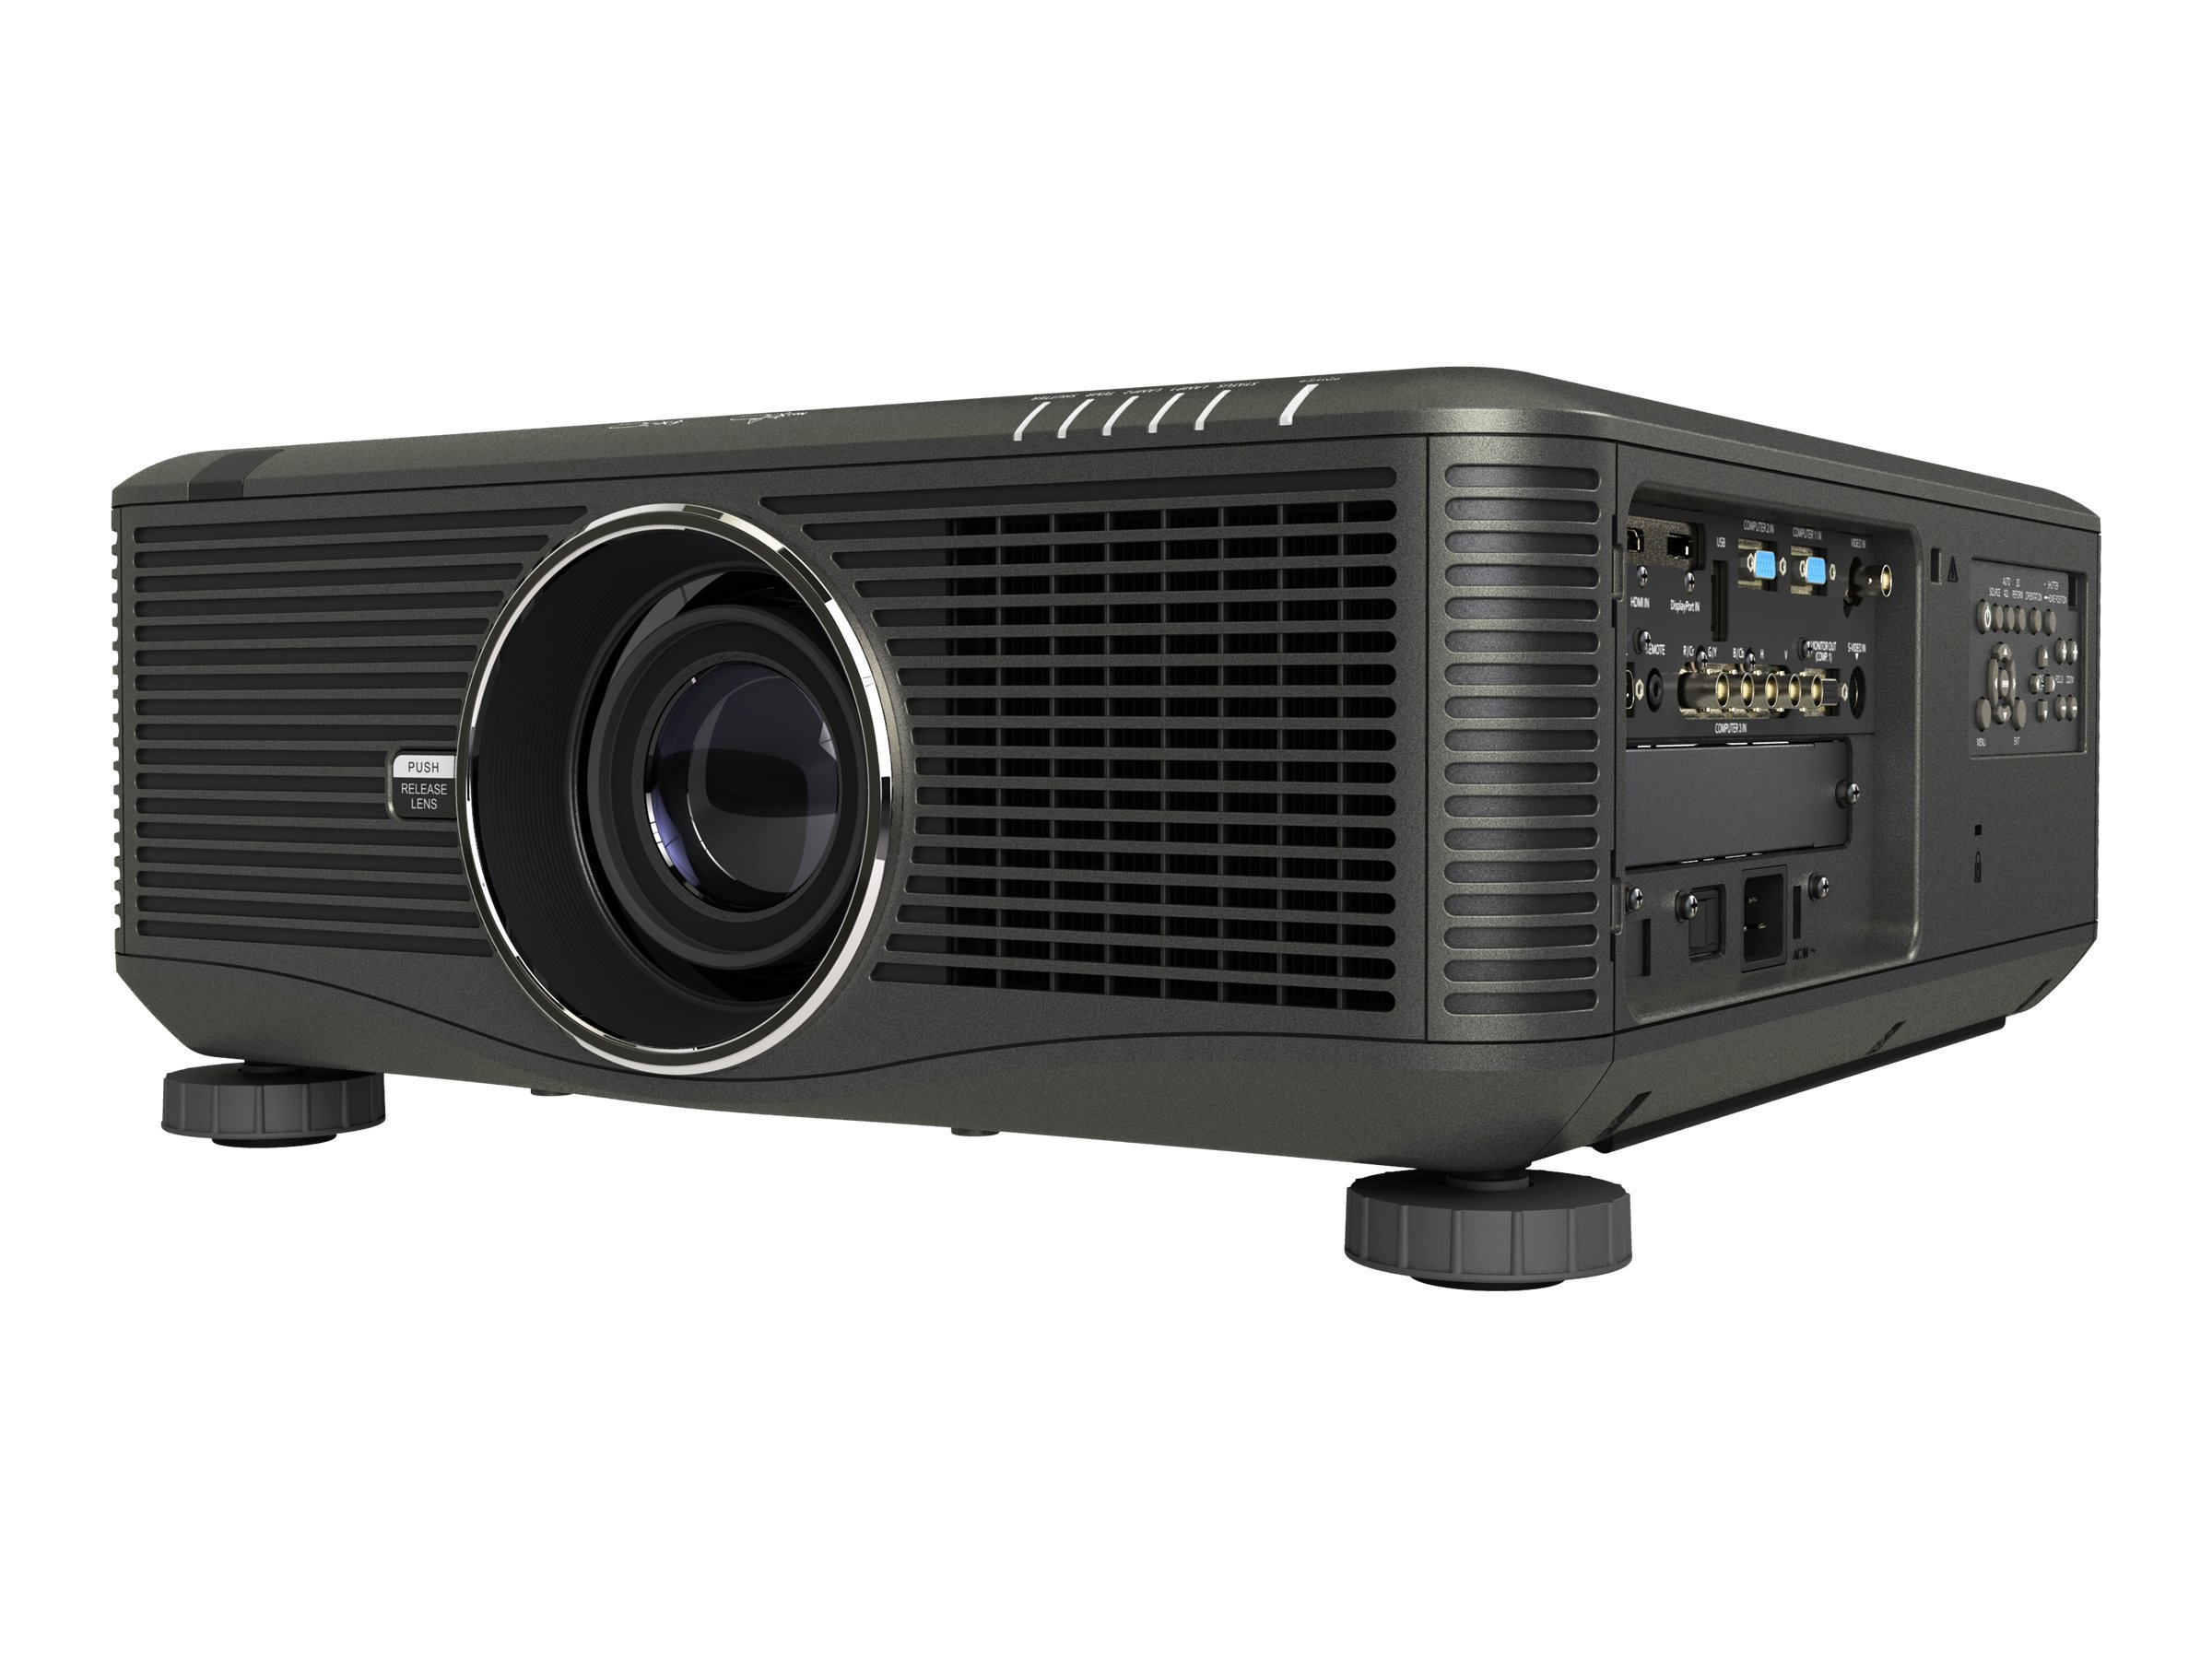 NEC Bundle PX800X DLP XGA Installation Projector, 8000 Lumens, with NP08ZL Lens